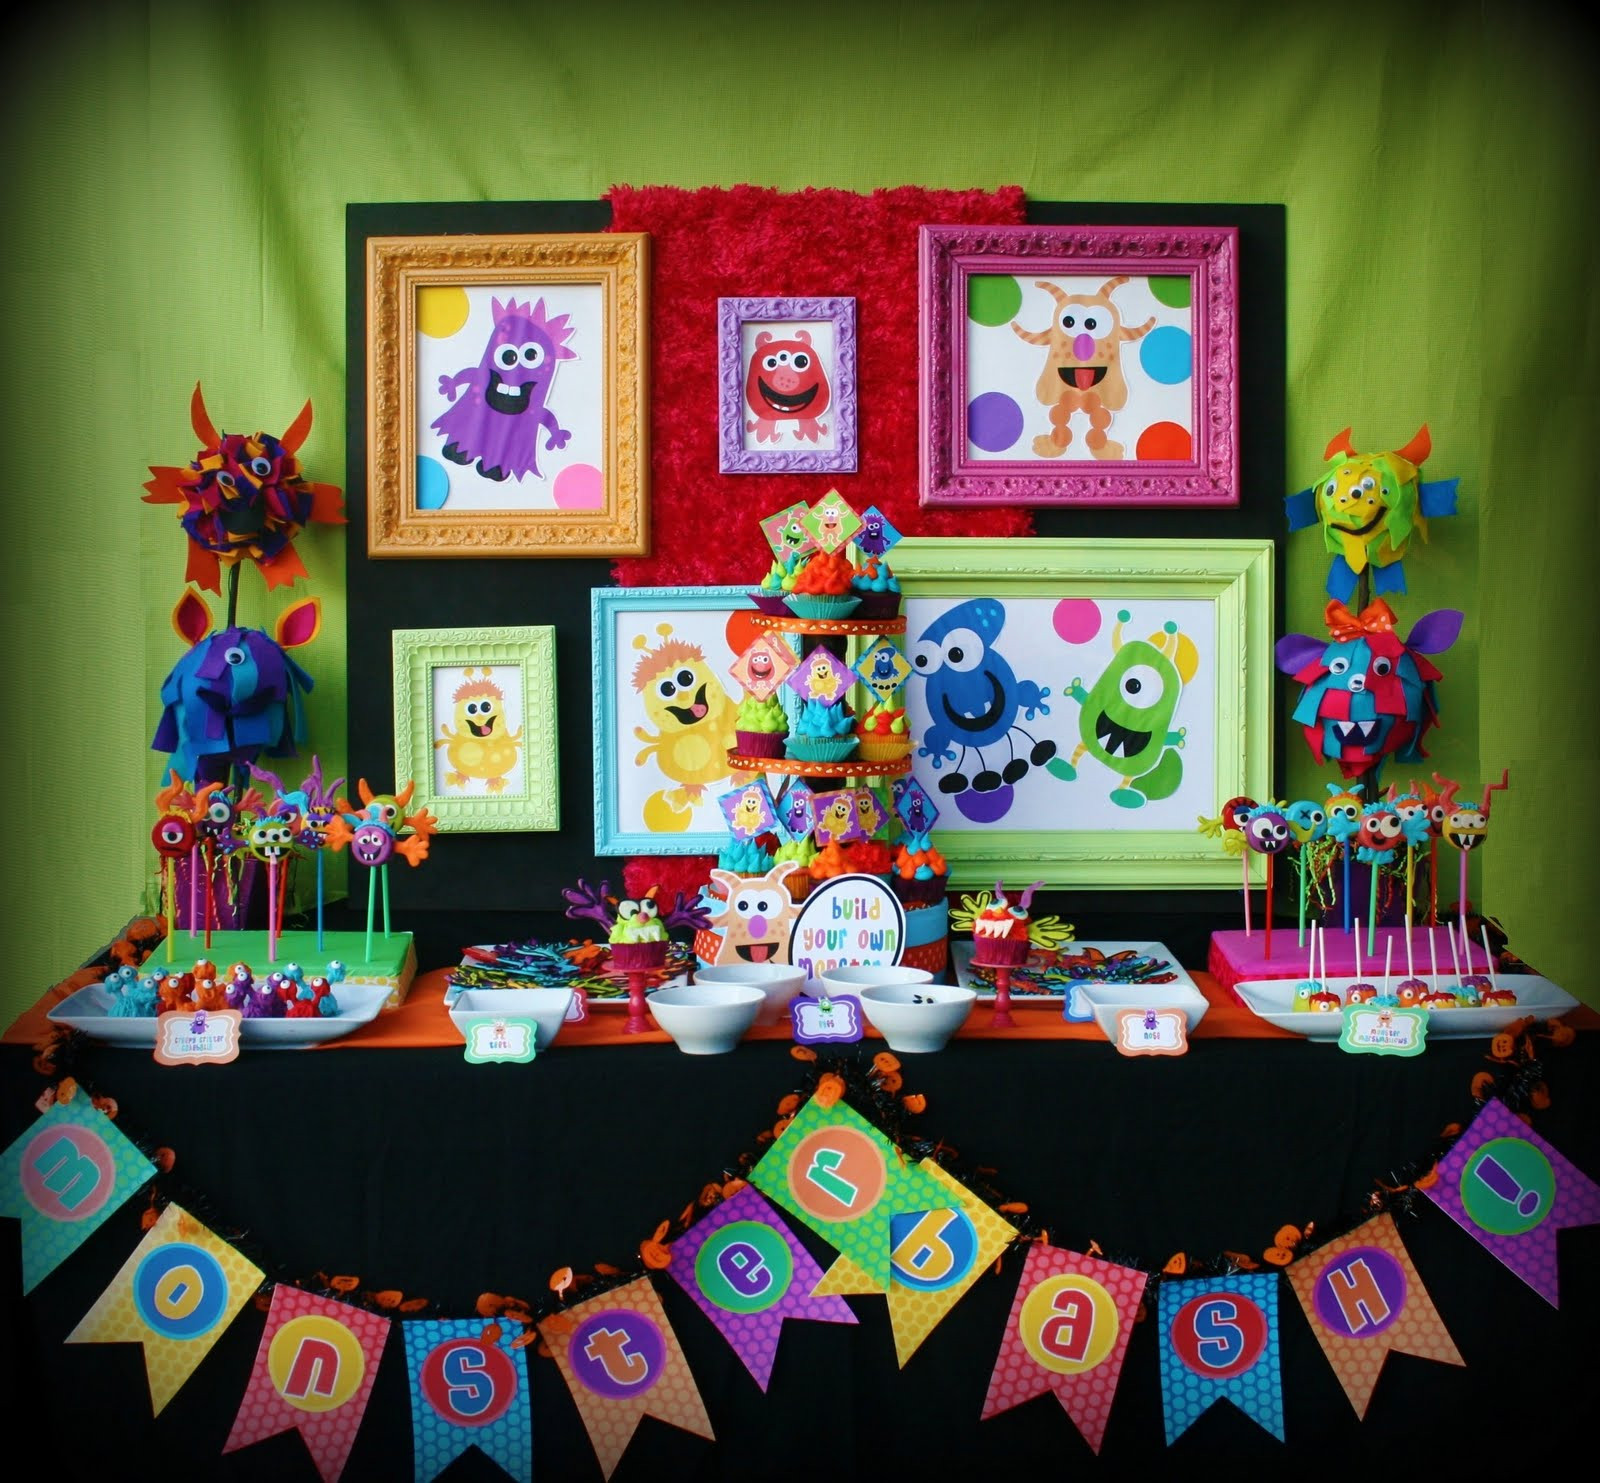 Best ideas about Birthday Party Ideas For Boys . Save or Pin Kids Birthday Party Ideas Birthday Now.